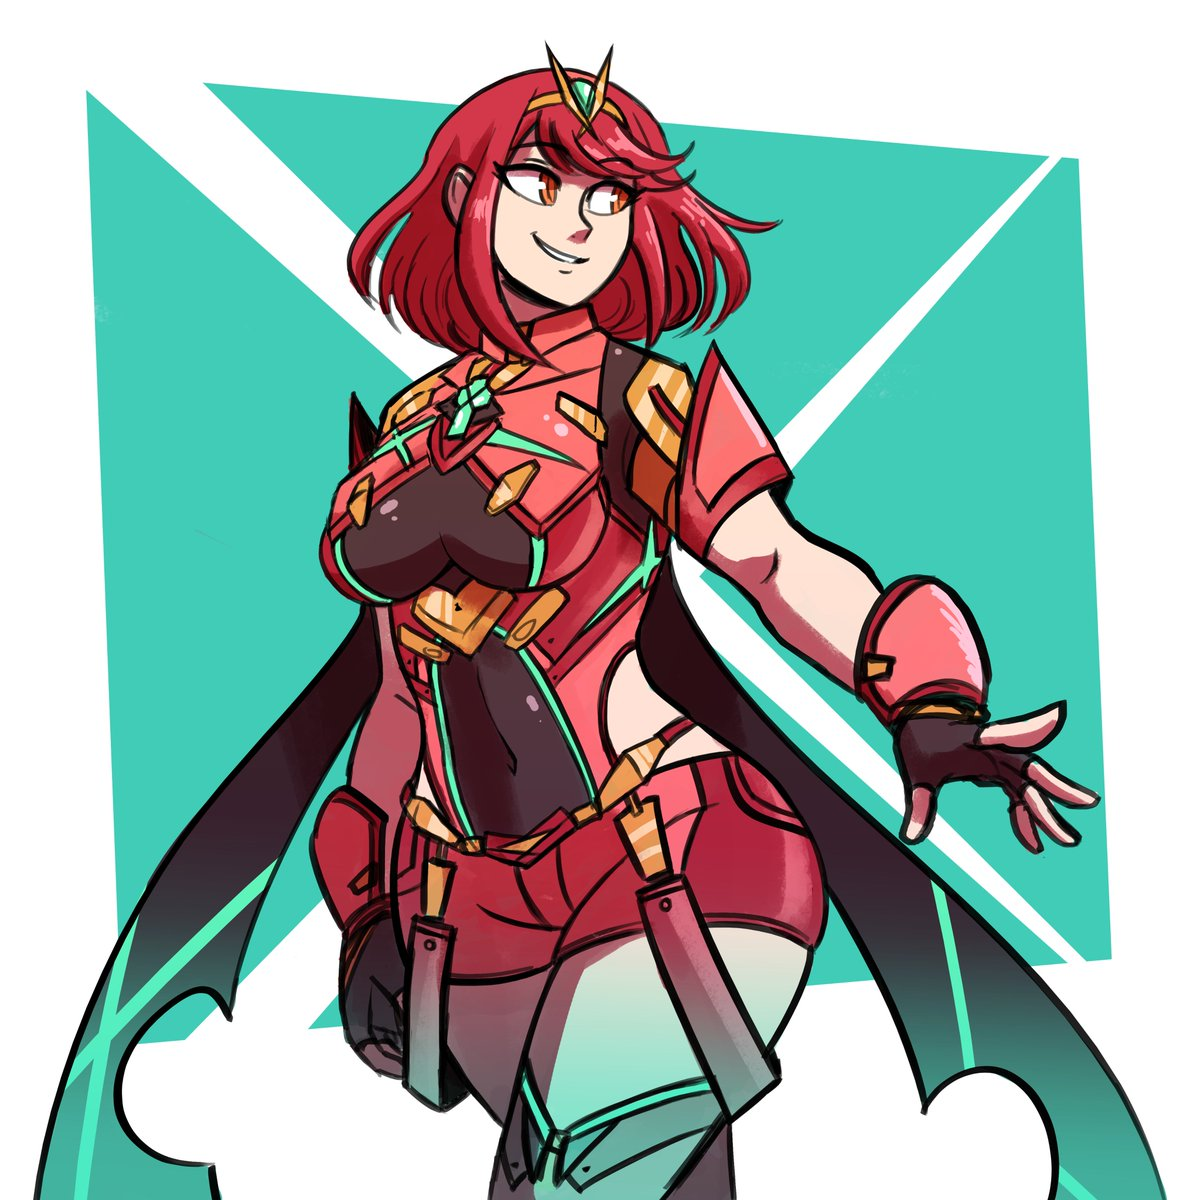 Took a while but here she is! Winner of the Fanart Friday poll on my Patreon is Pyra from Xenoblade Chronicles 2! She has...quite the design. <br>http://pic.twitter.com/0Nbzxg5awE